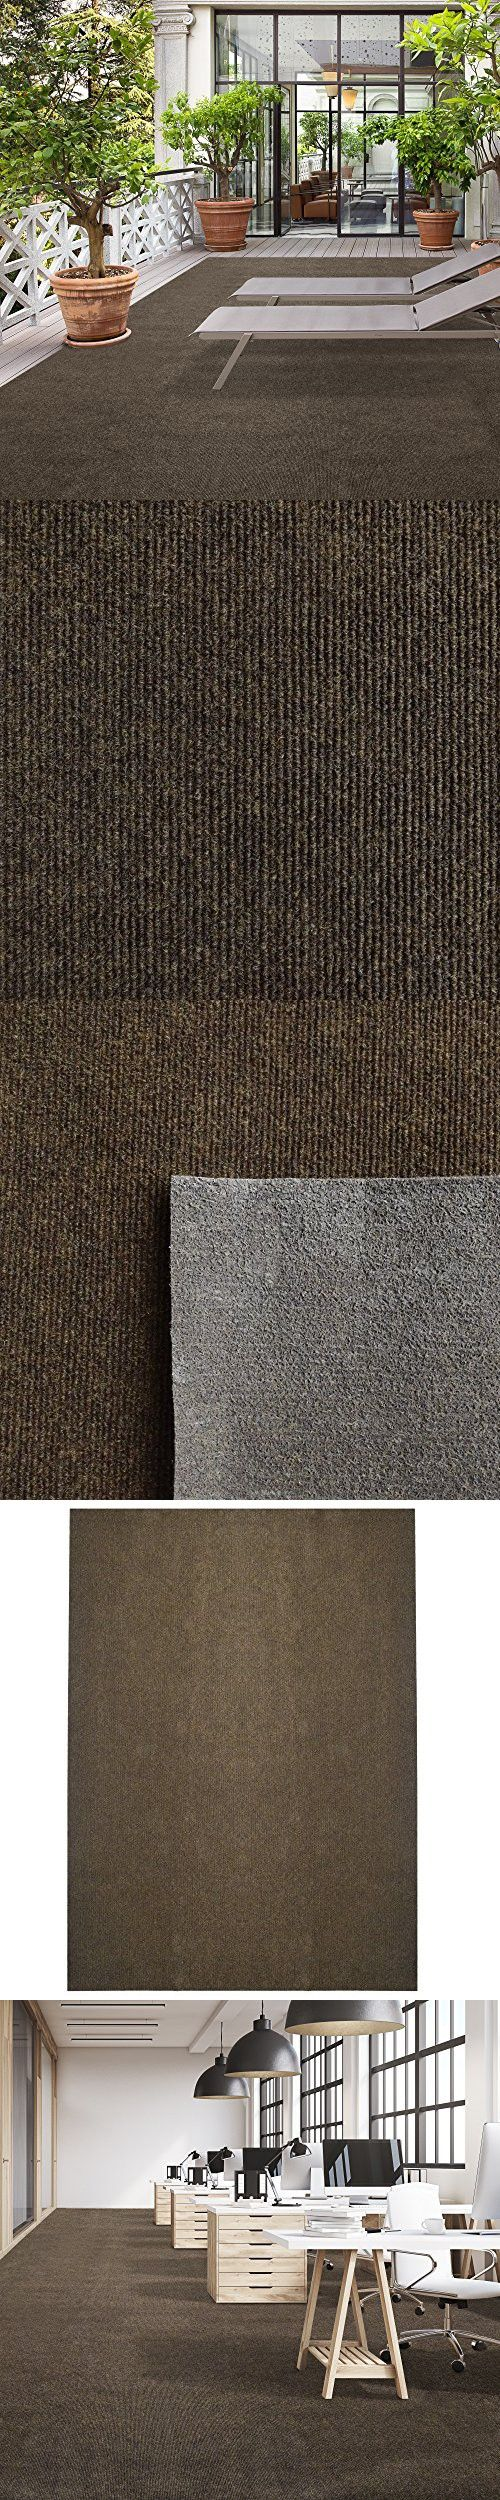 Icustomrug Affordable Indoor Outdoor Carpet With Marine